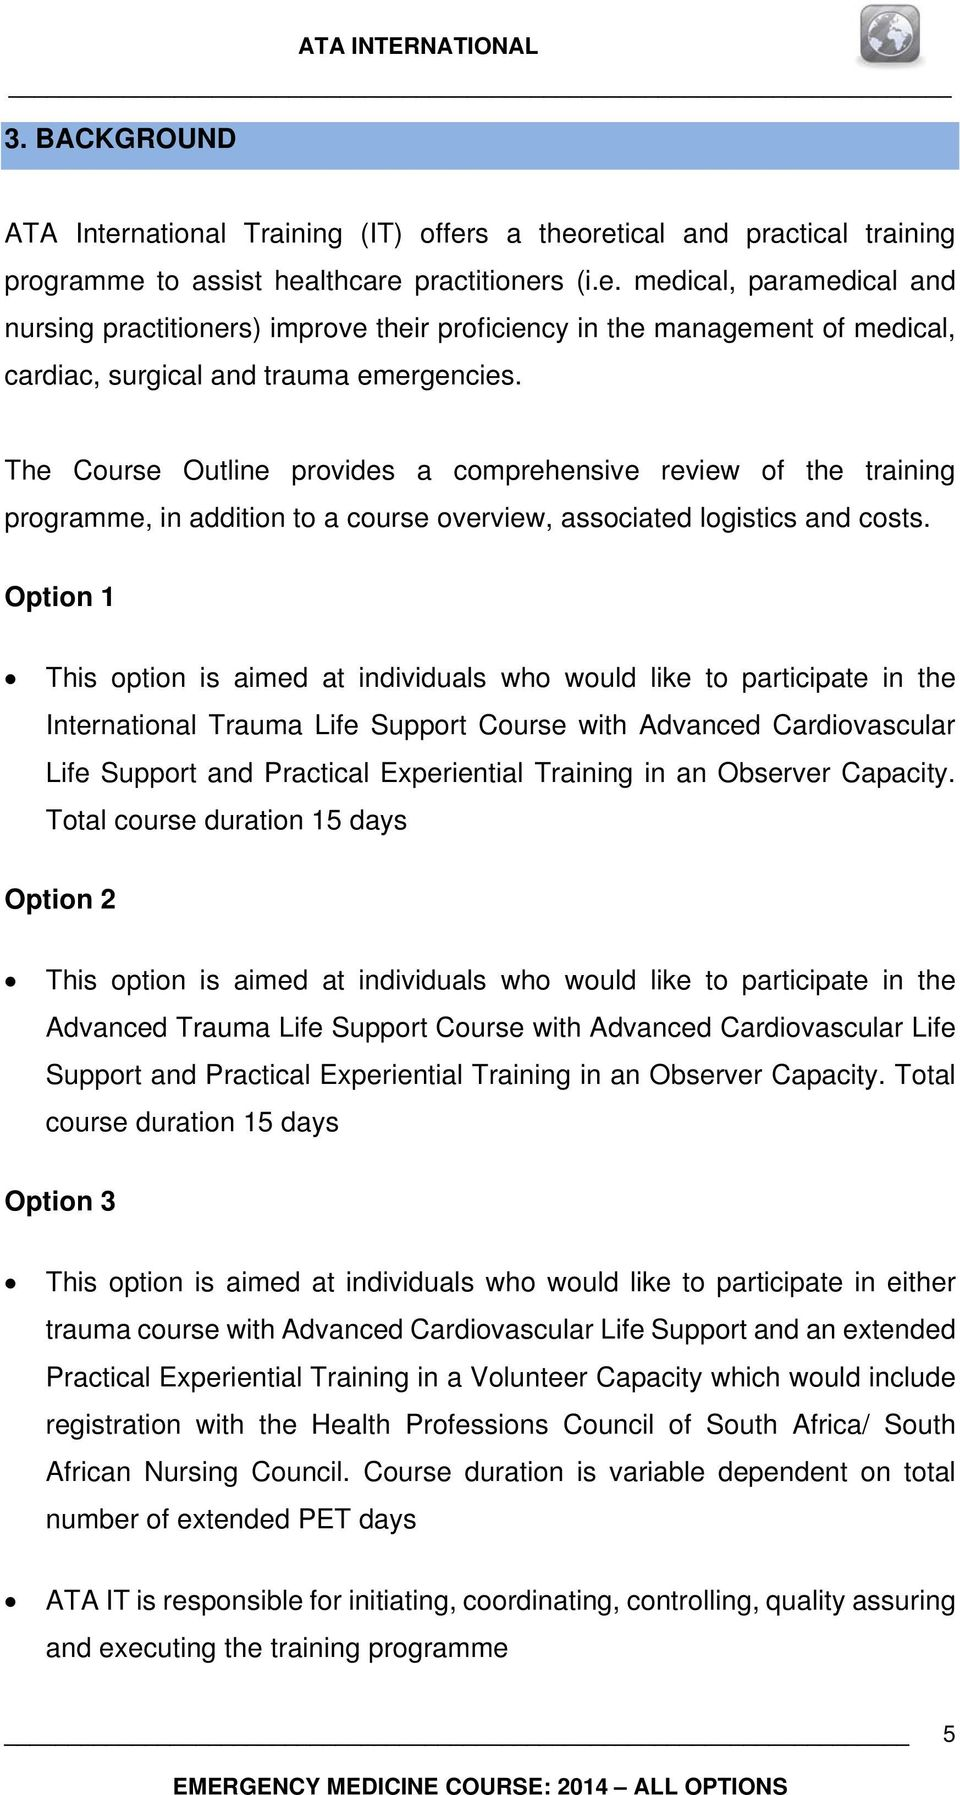 Option 1 This option is aimed at individuals who would like to participate in the International Trauma Life Support Course with Advanced Cardiovascular Life Support and Practical Experiential